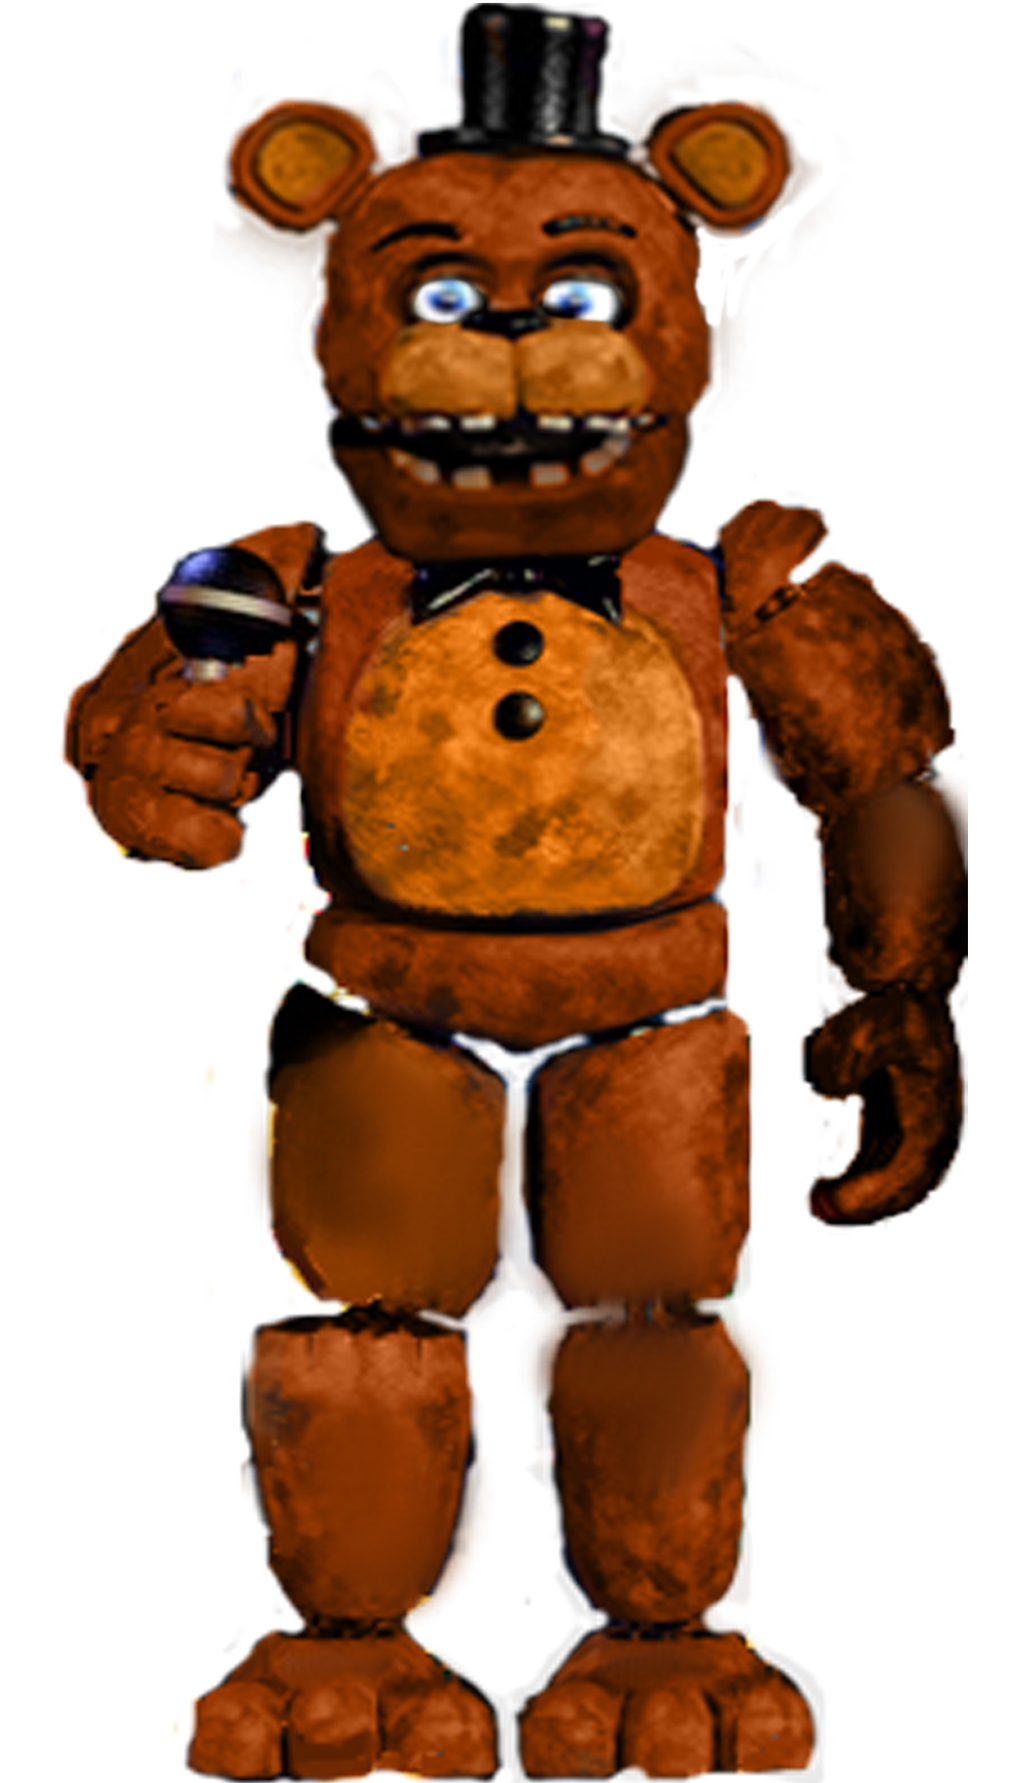 Unwithered freddy by reizosaurus 64 on deviantart